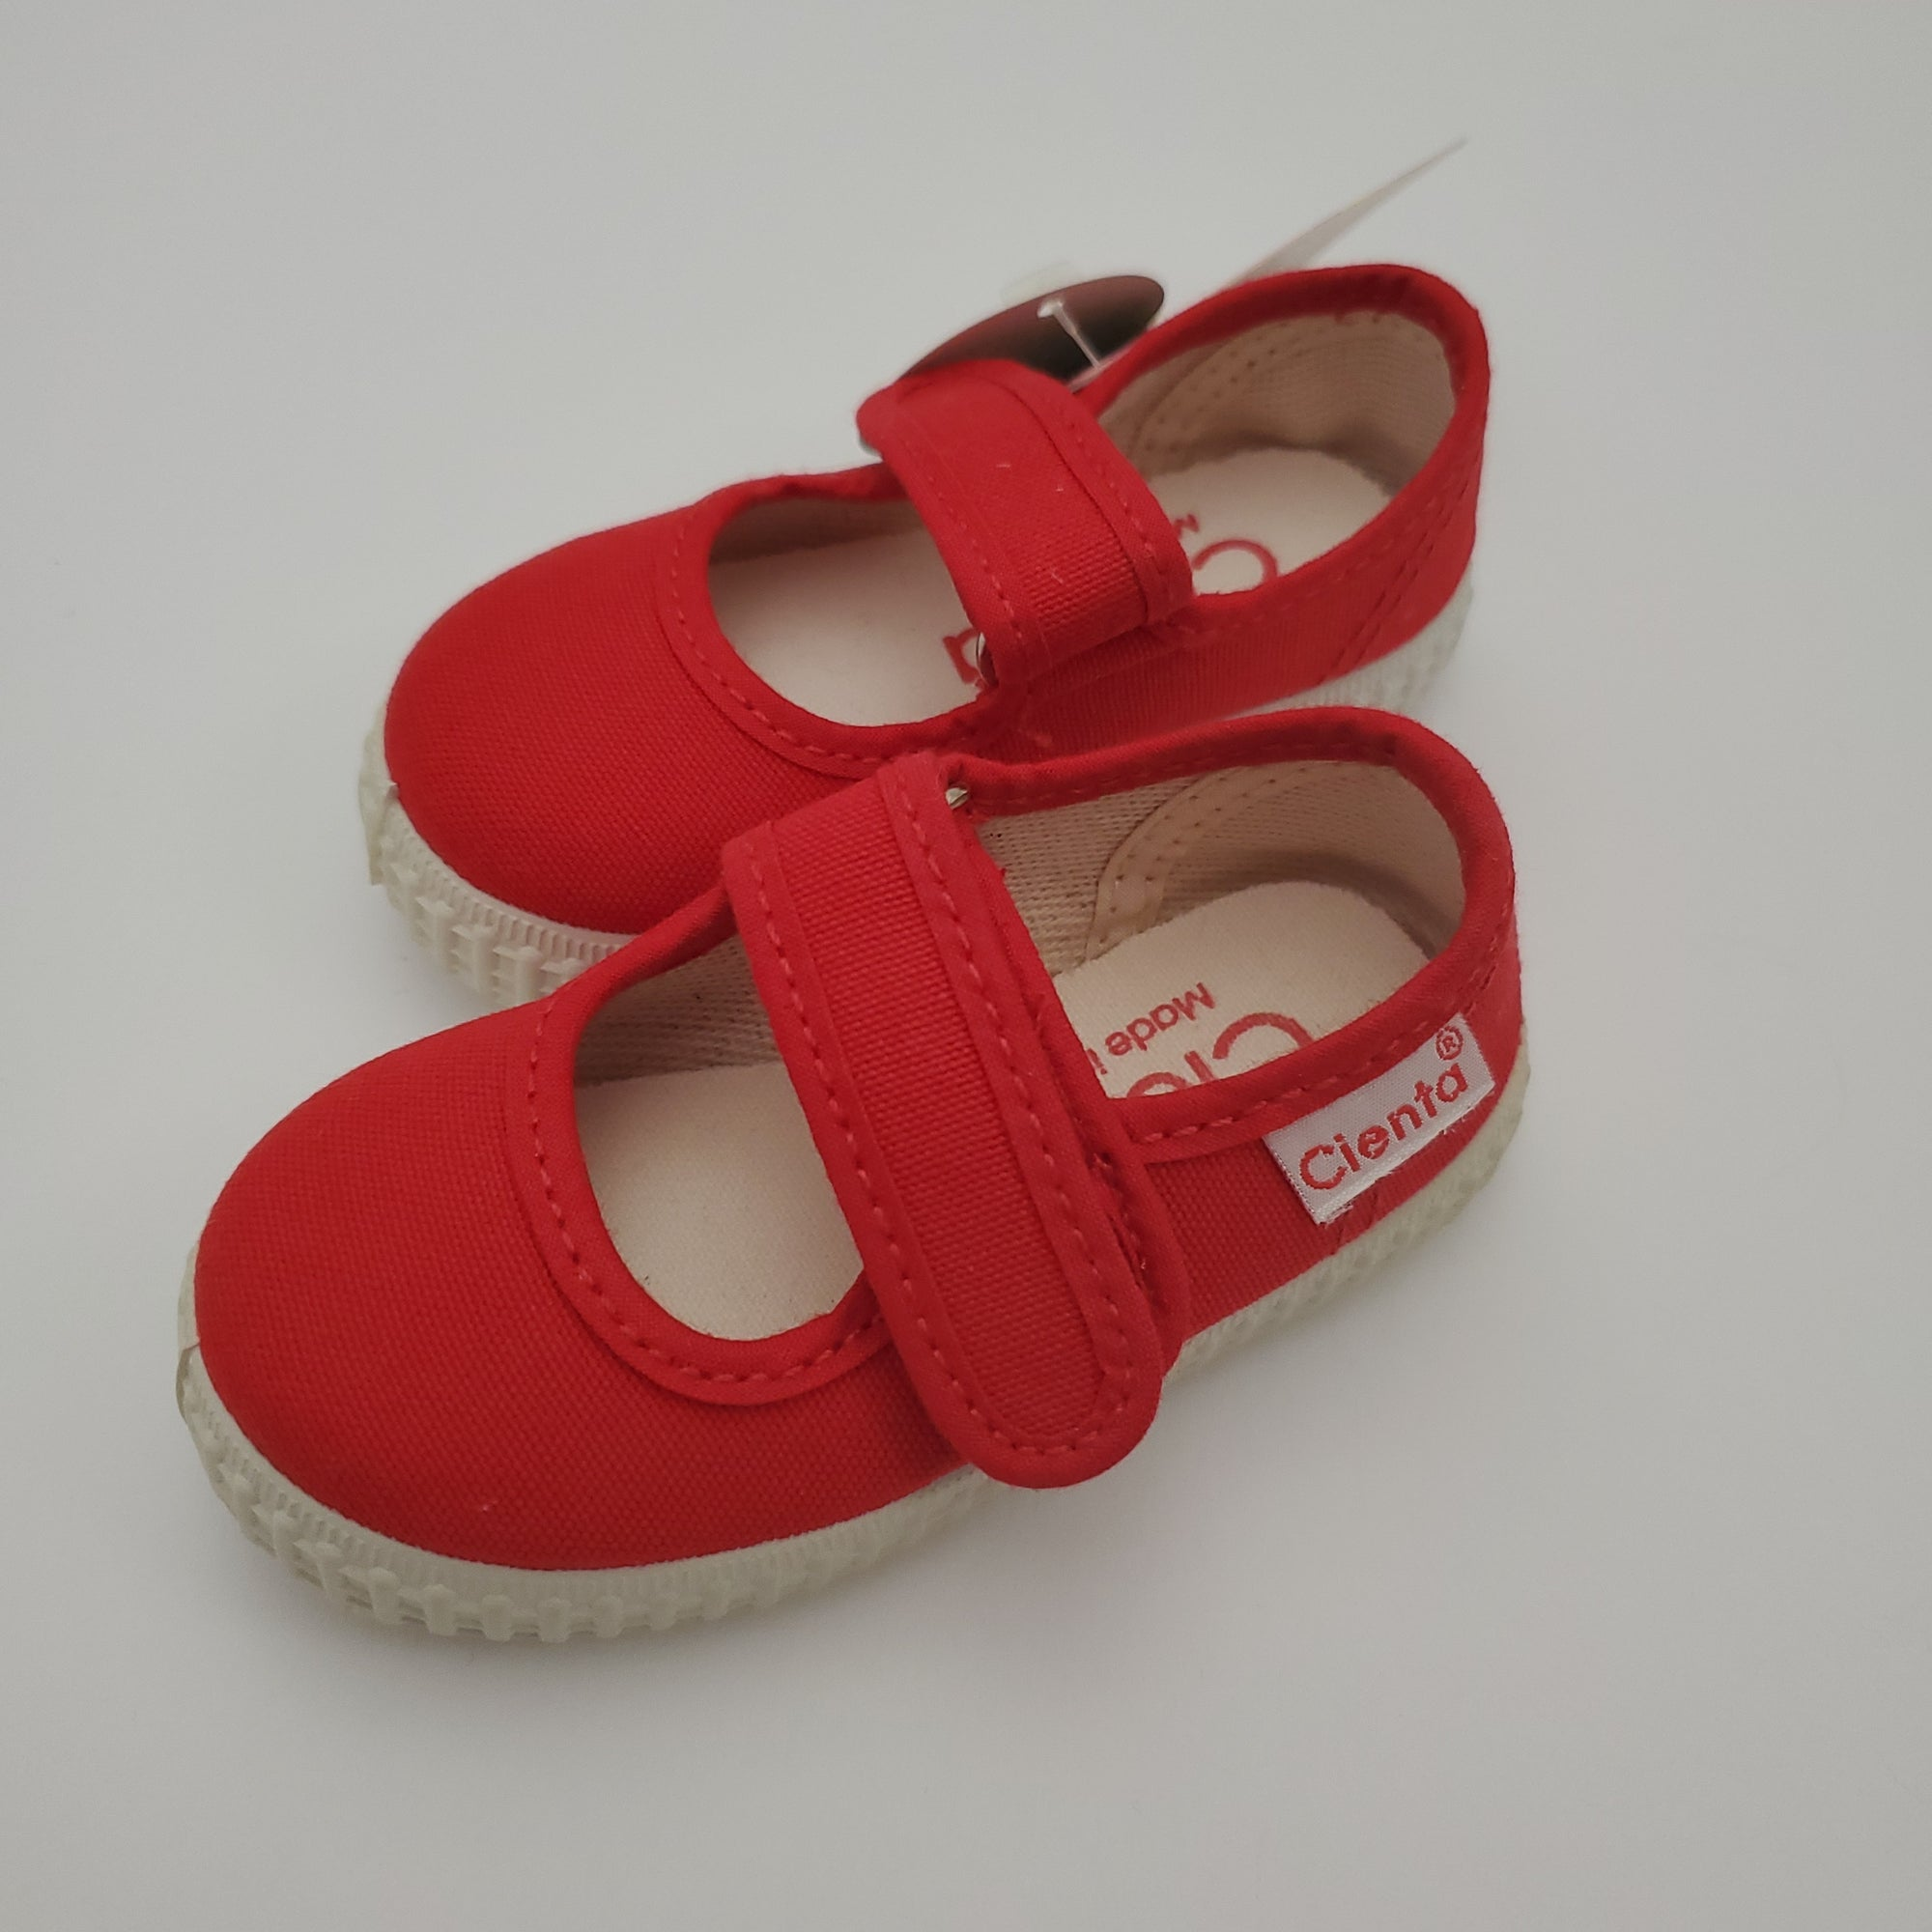 Cienta Canvas Mary Jane in Rojo (Red), 56000